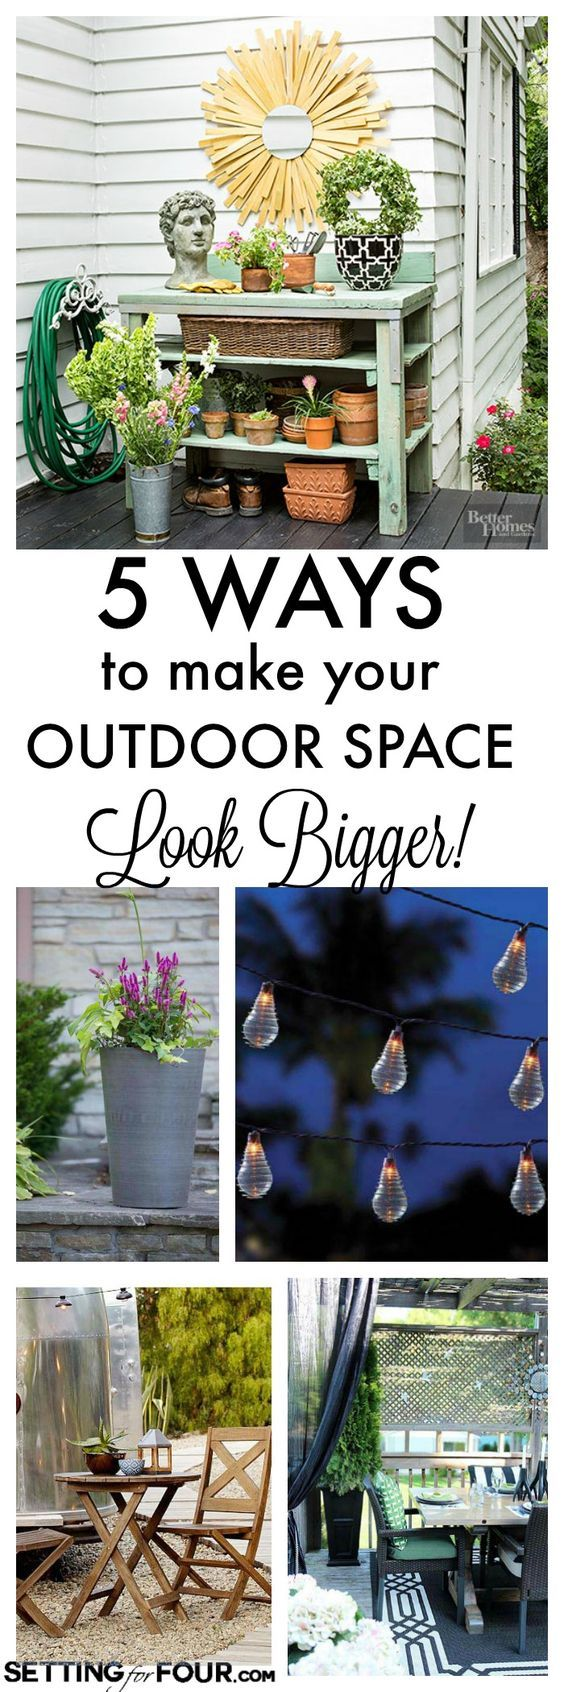 How to fake more space on your outdoor patio or deck! See these 5 instant diy decor tips to make your outdoor space look deceptively large